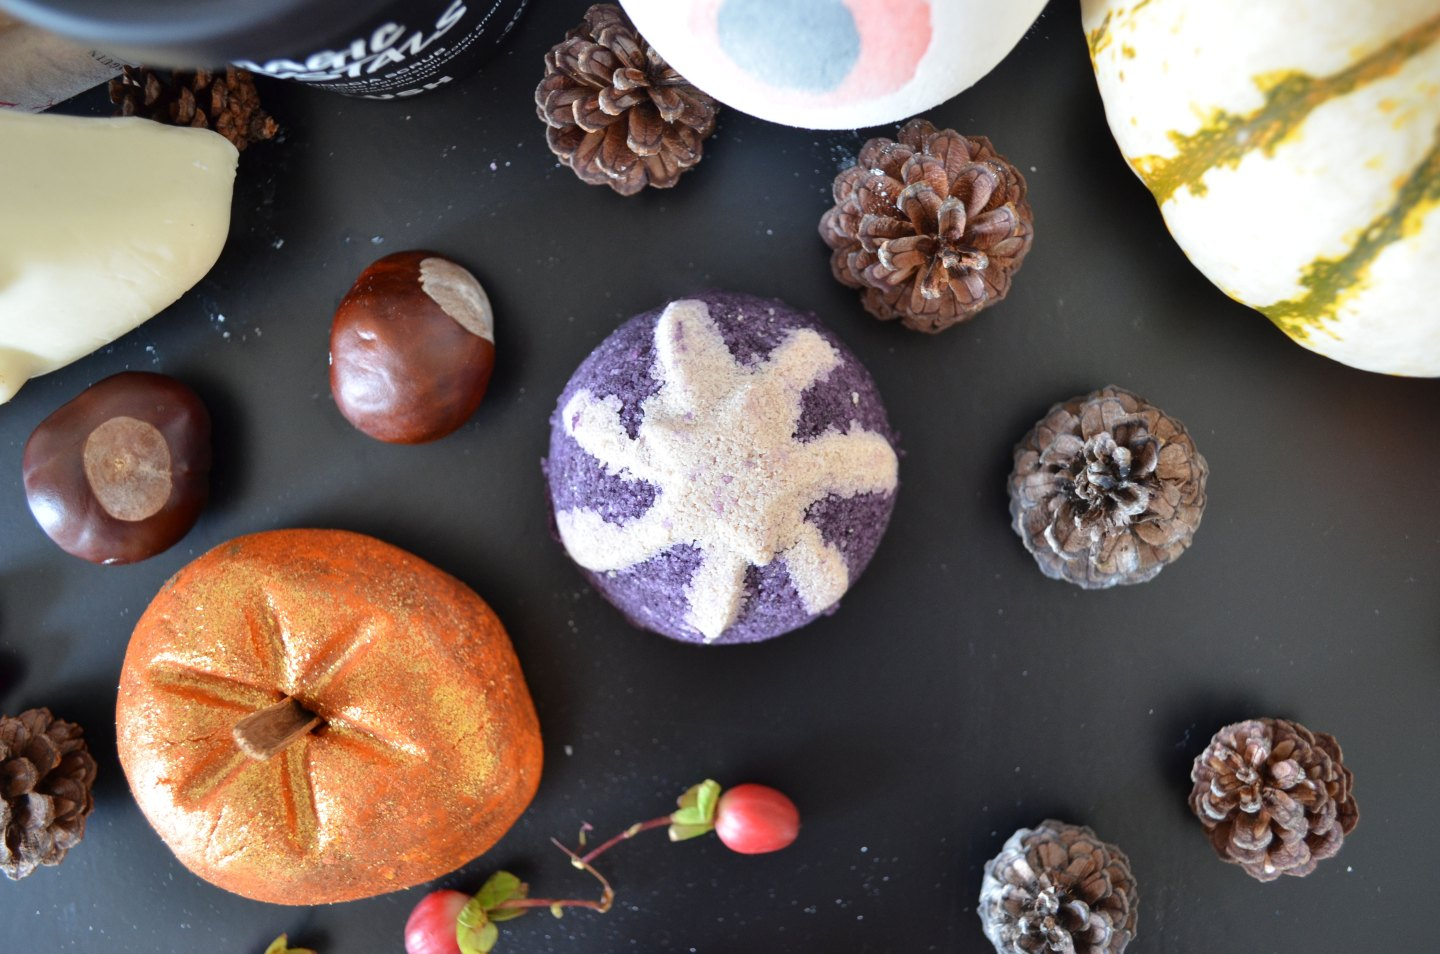 Lush Halloween Lush's Halloween collection